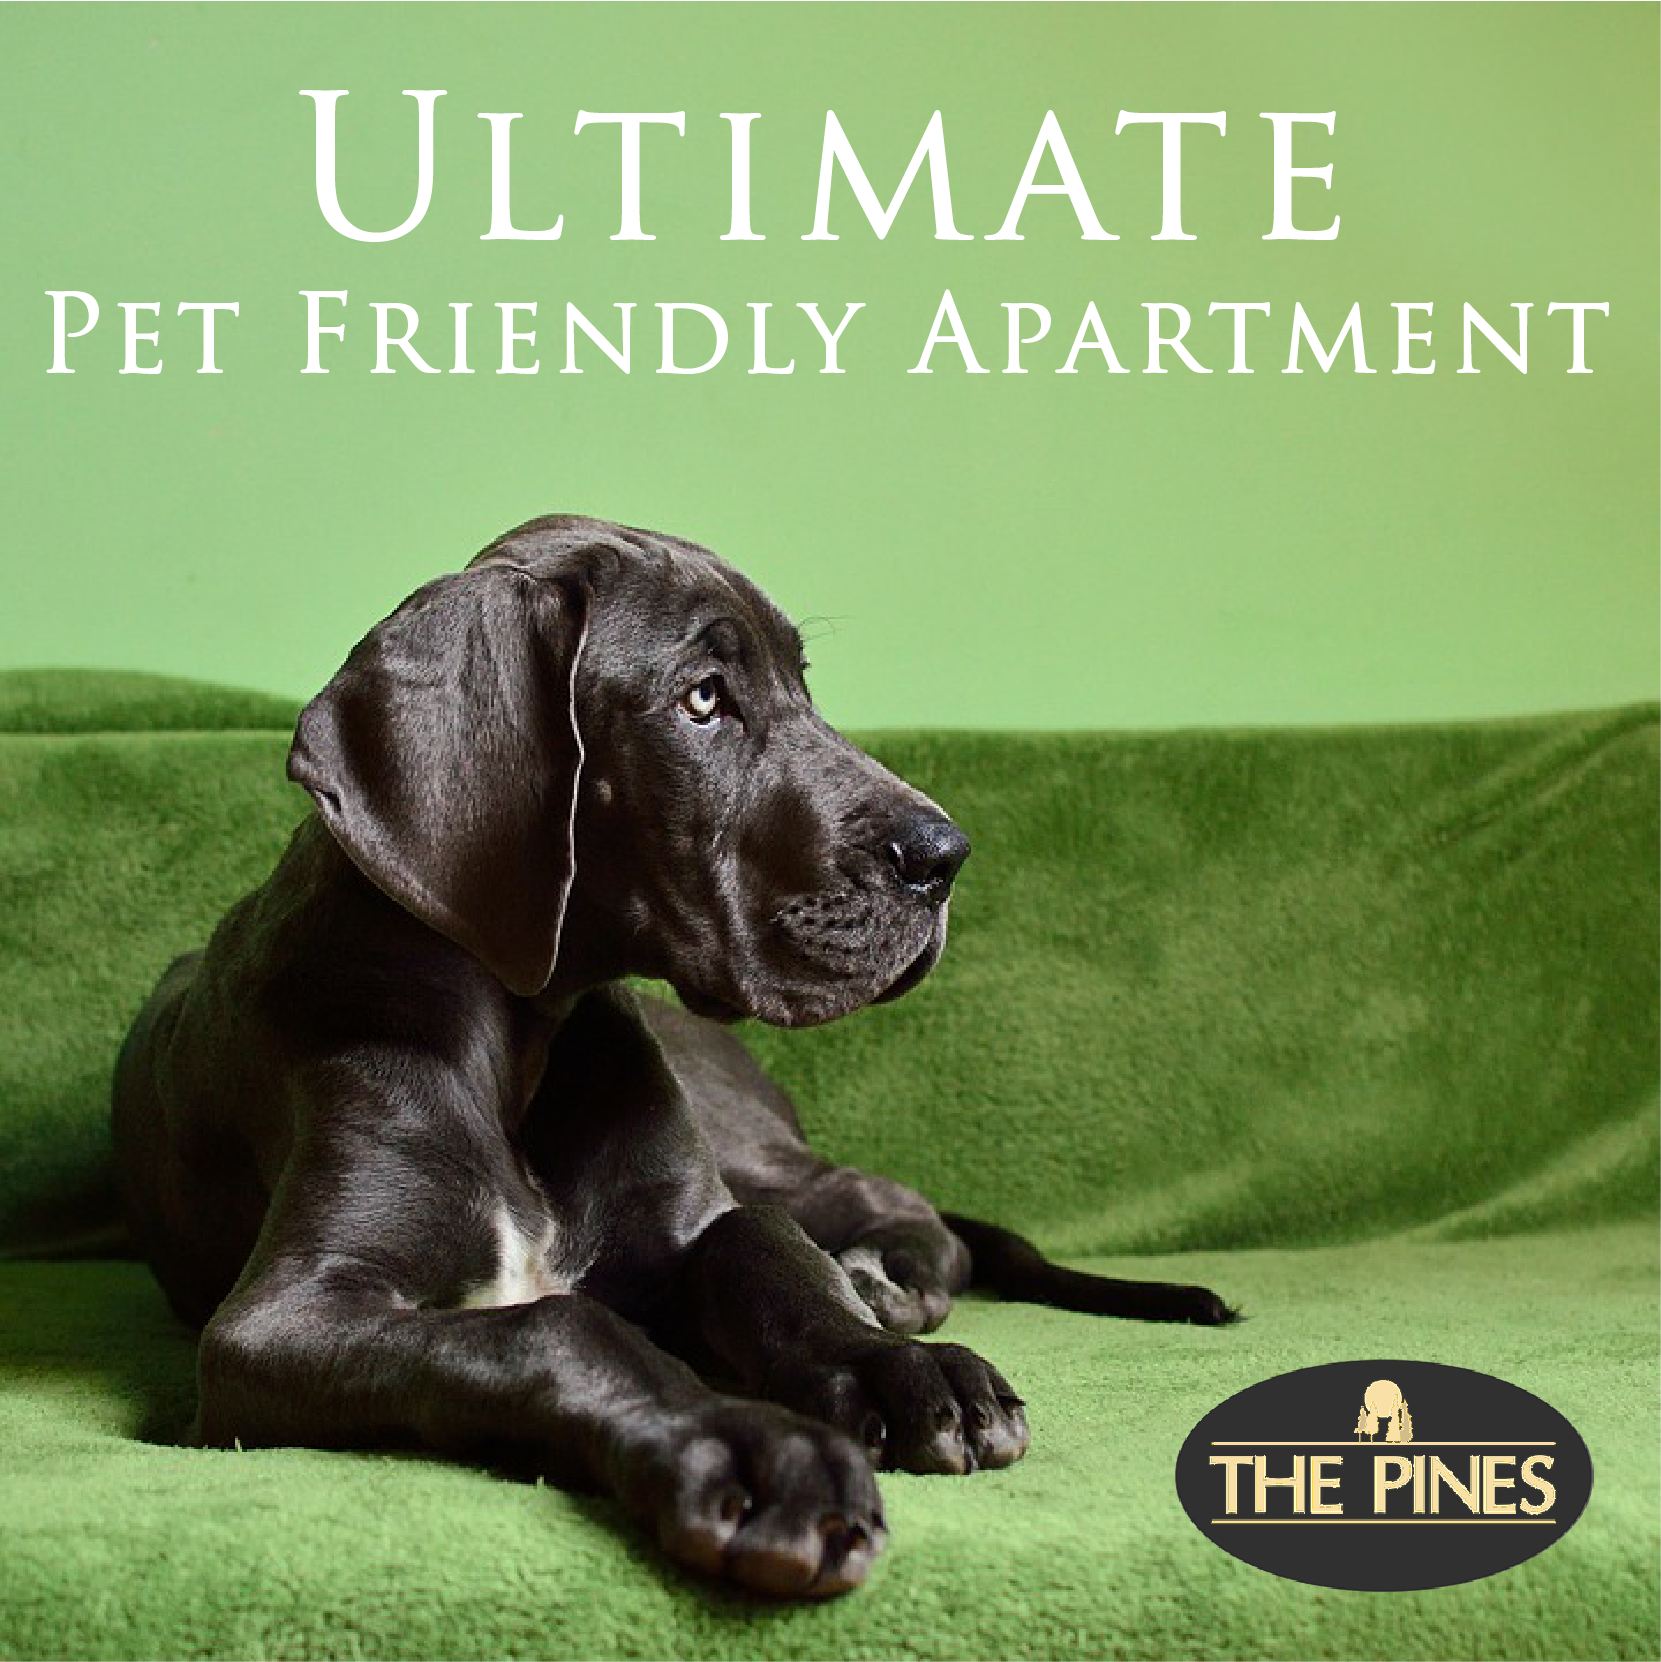 Ultimate #Pet Friendly #Apartment. #Rental Apartment #Home